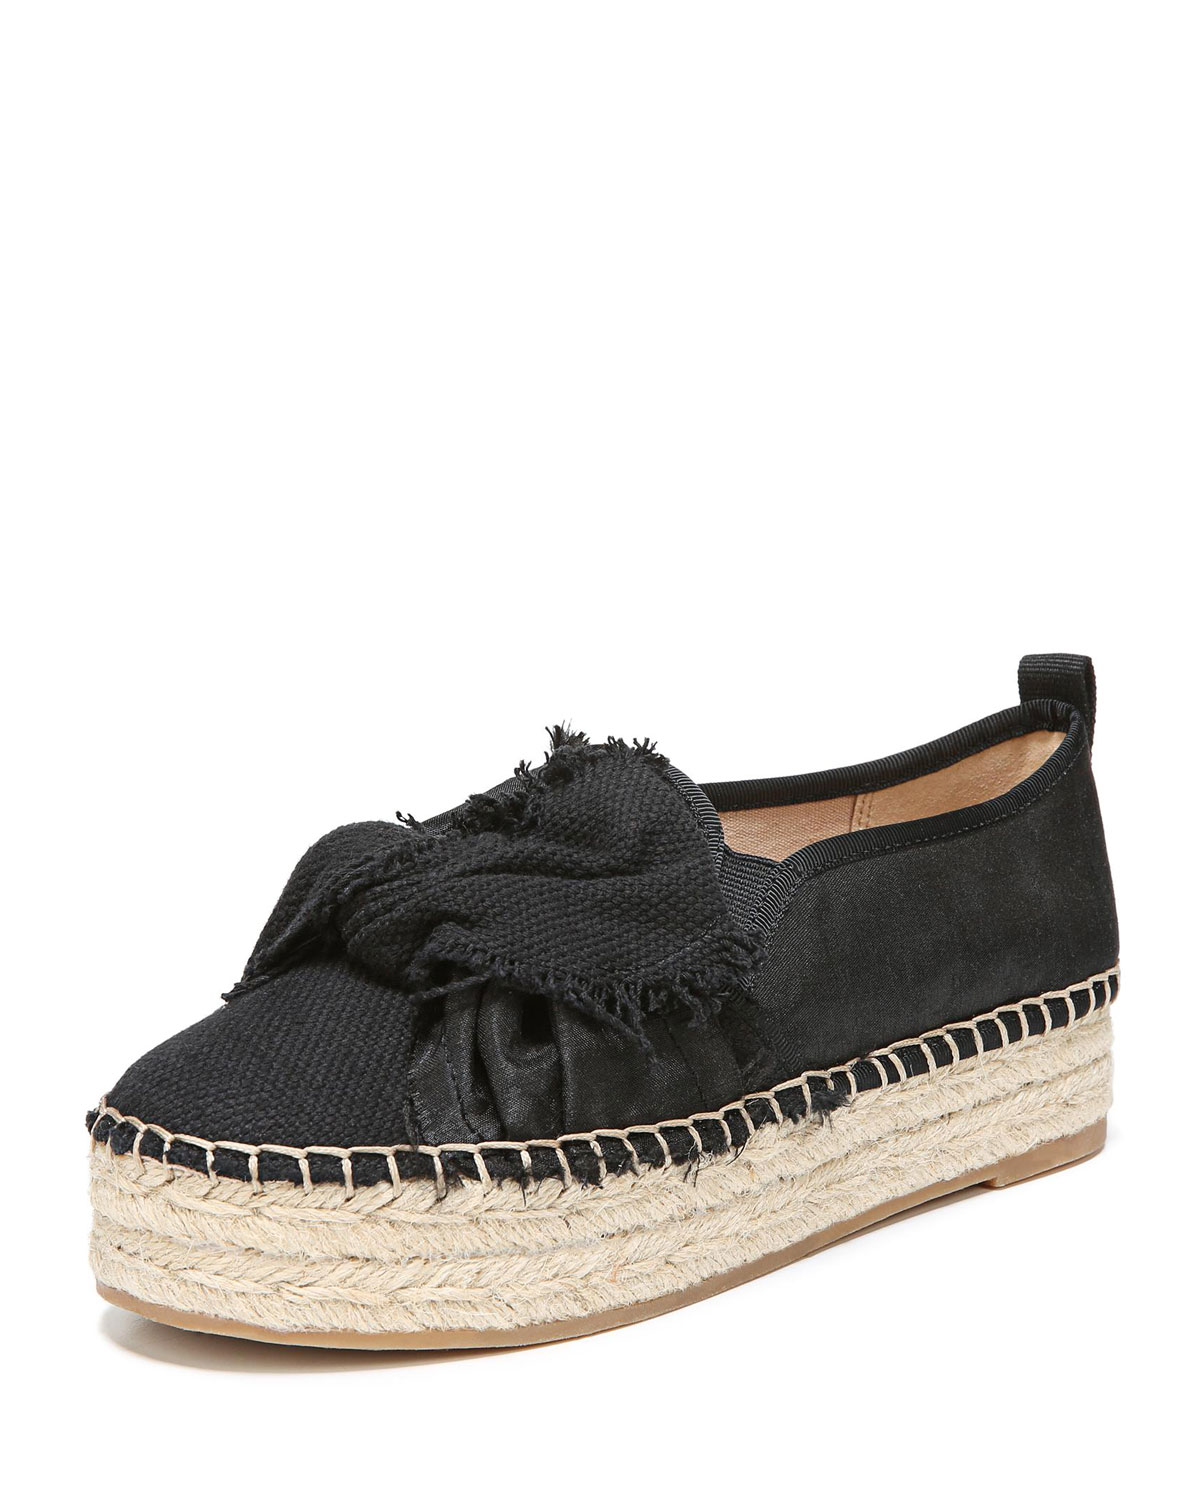 0aaa8323f Sam Edelman Cabrera Washed-Out Canvas Platform Espadrille | Neiman ...